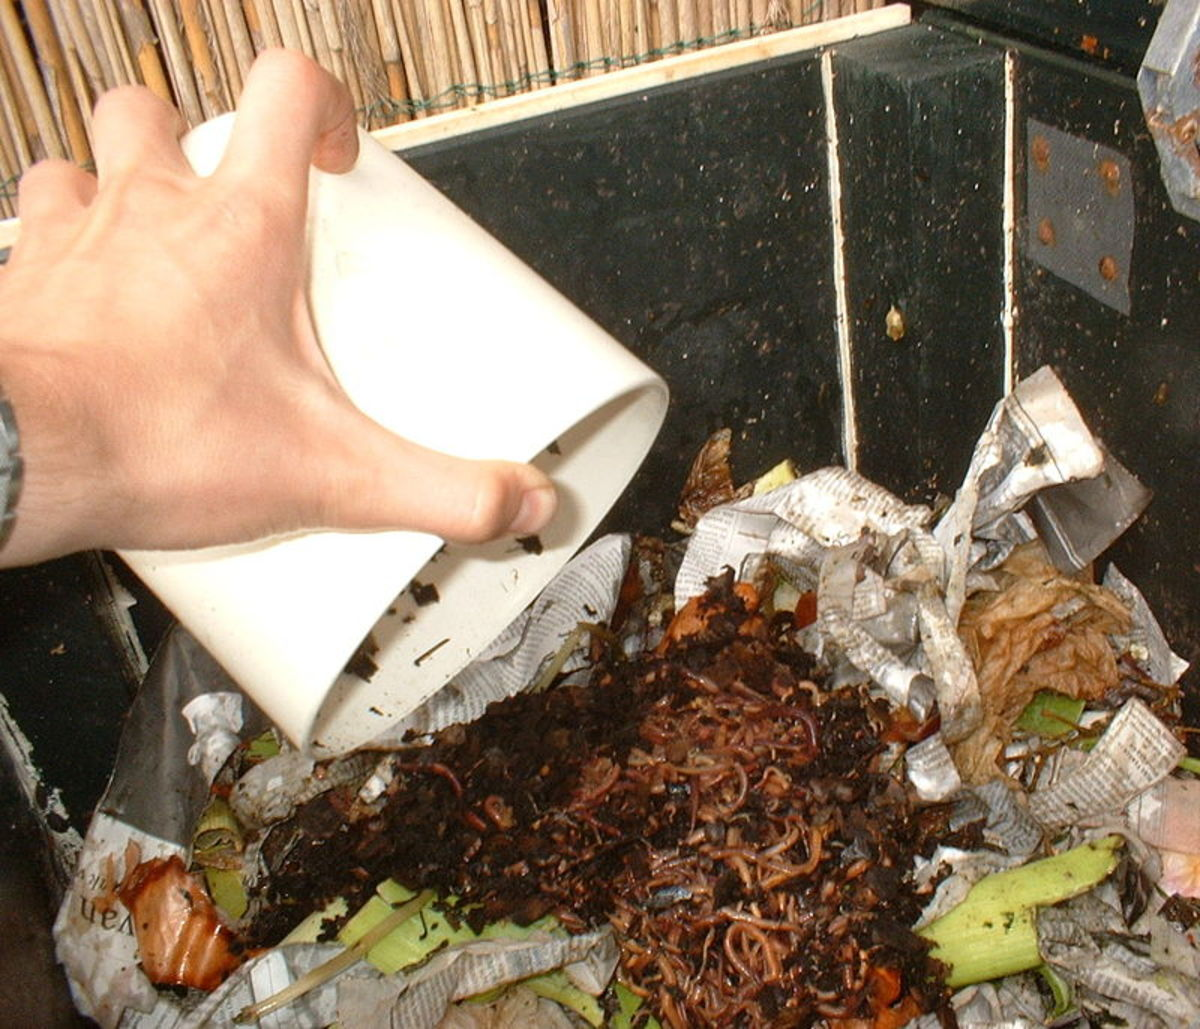 Adding food waste to a vermicomposter